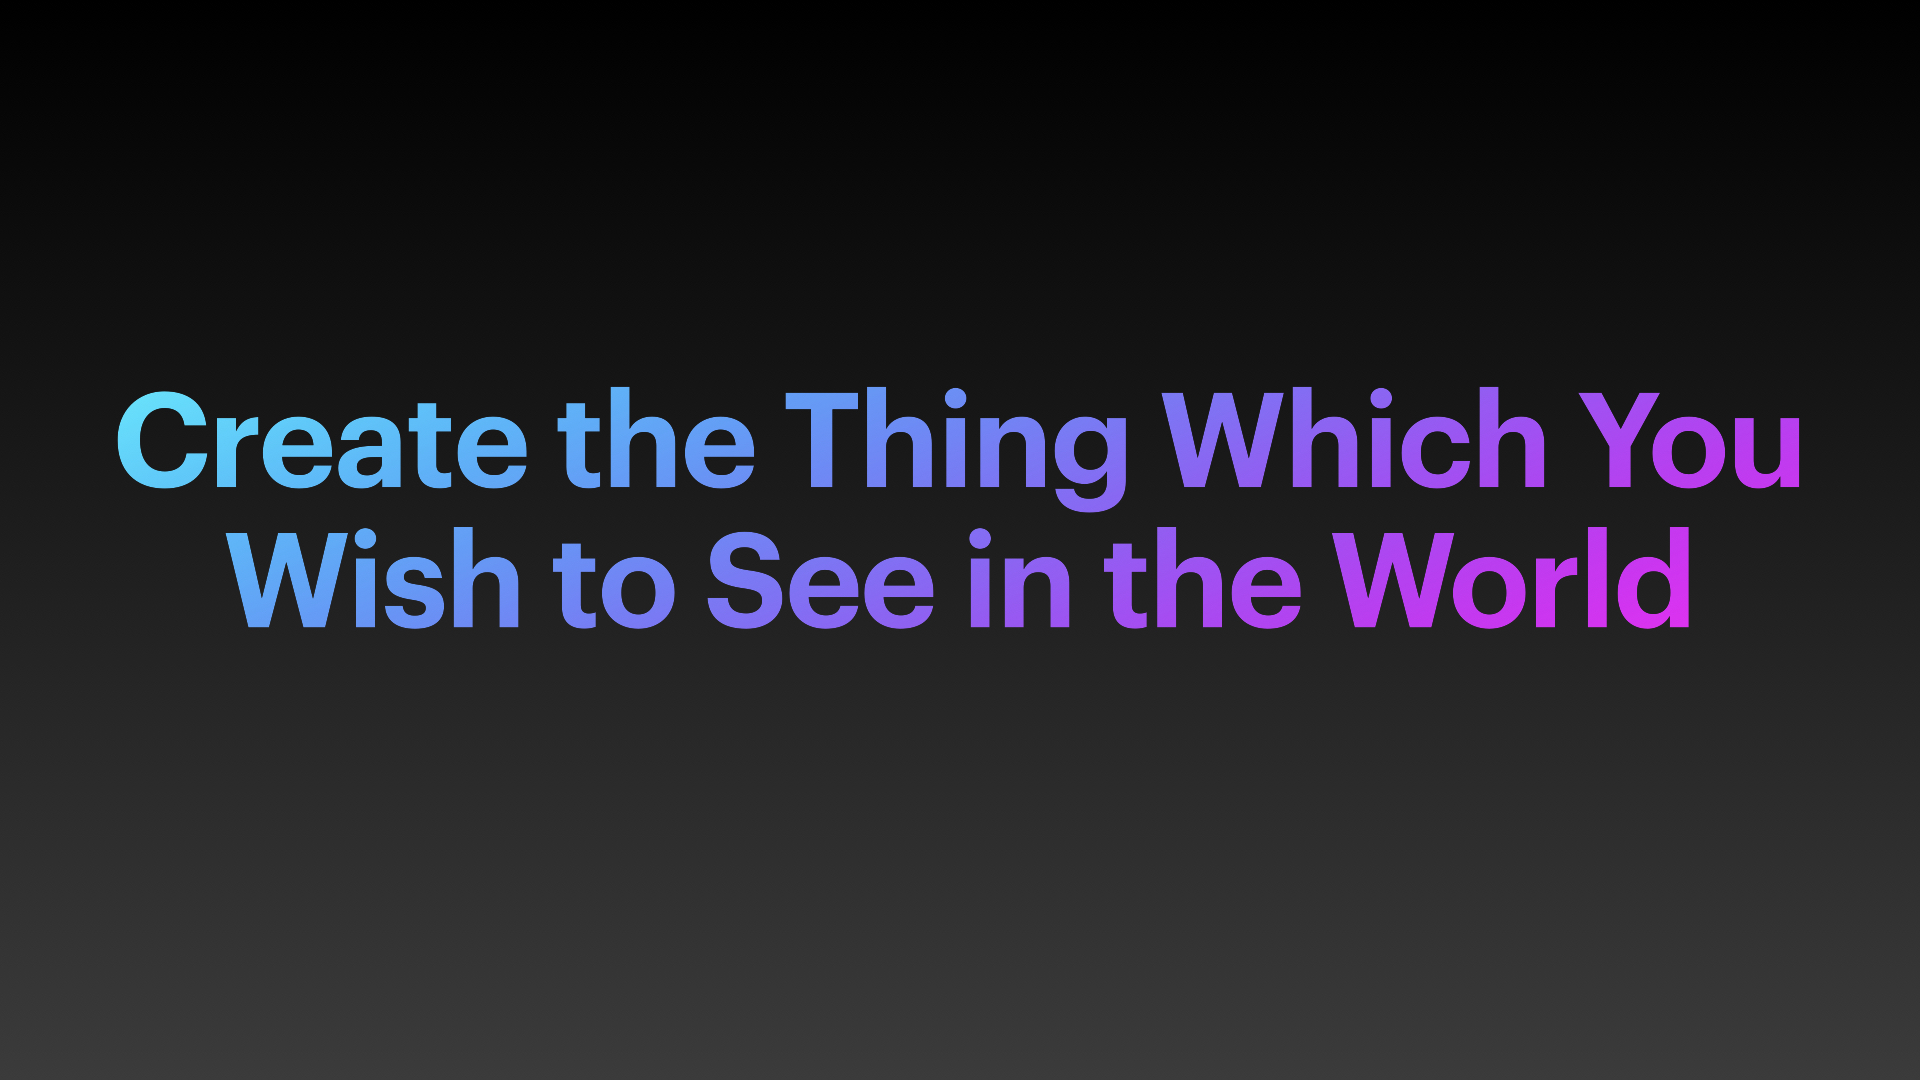 Create the thing which you wish to see in the world